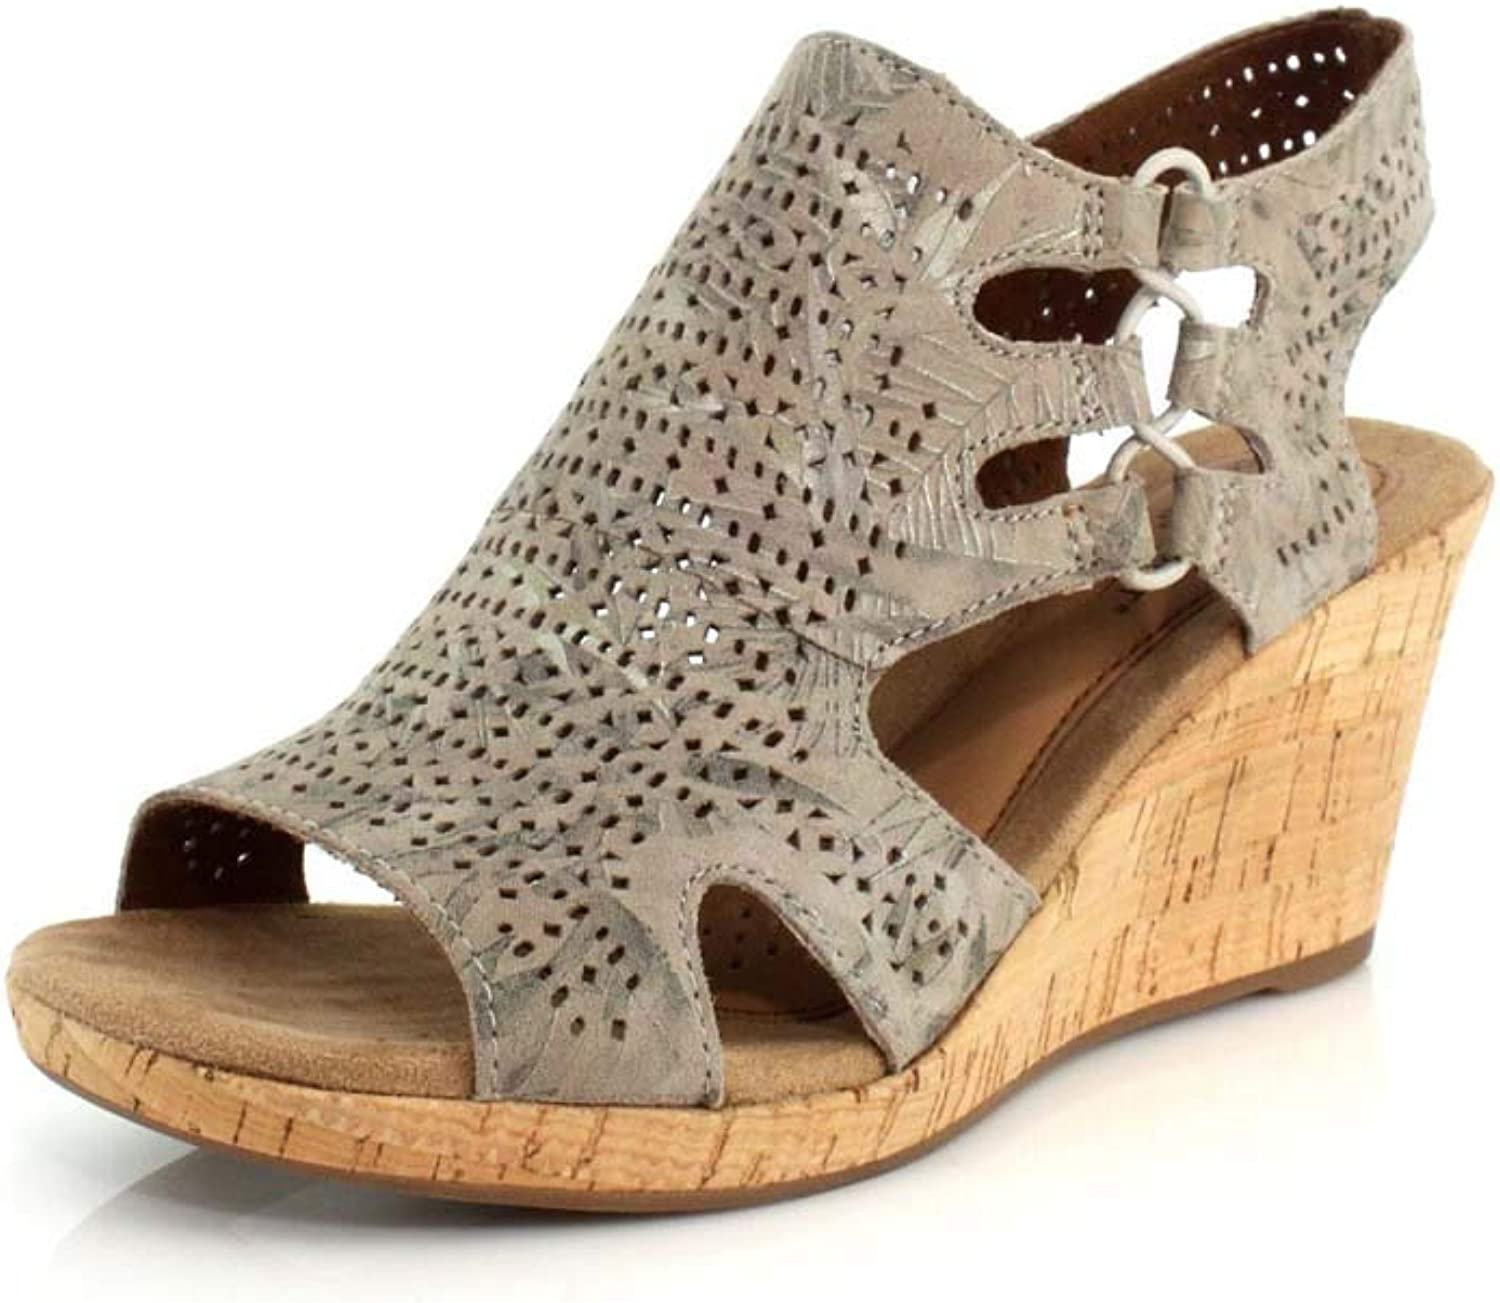 Rockport Cobb Hill Collection Women& 39;s Cobb Hill Janna Perf Bootie Floral Metallic 8 D US